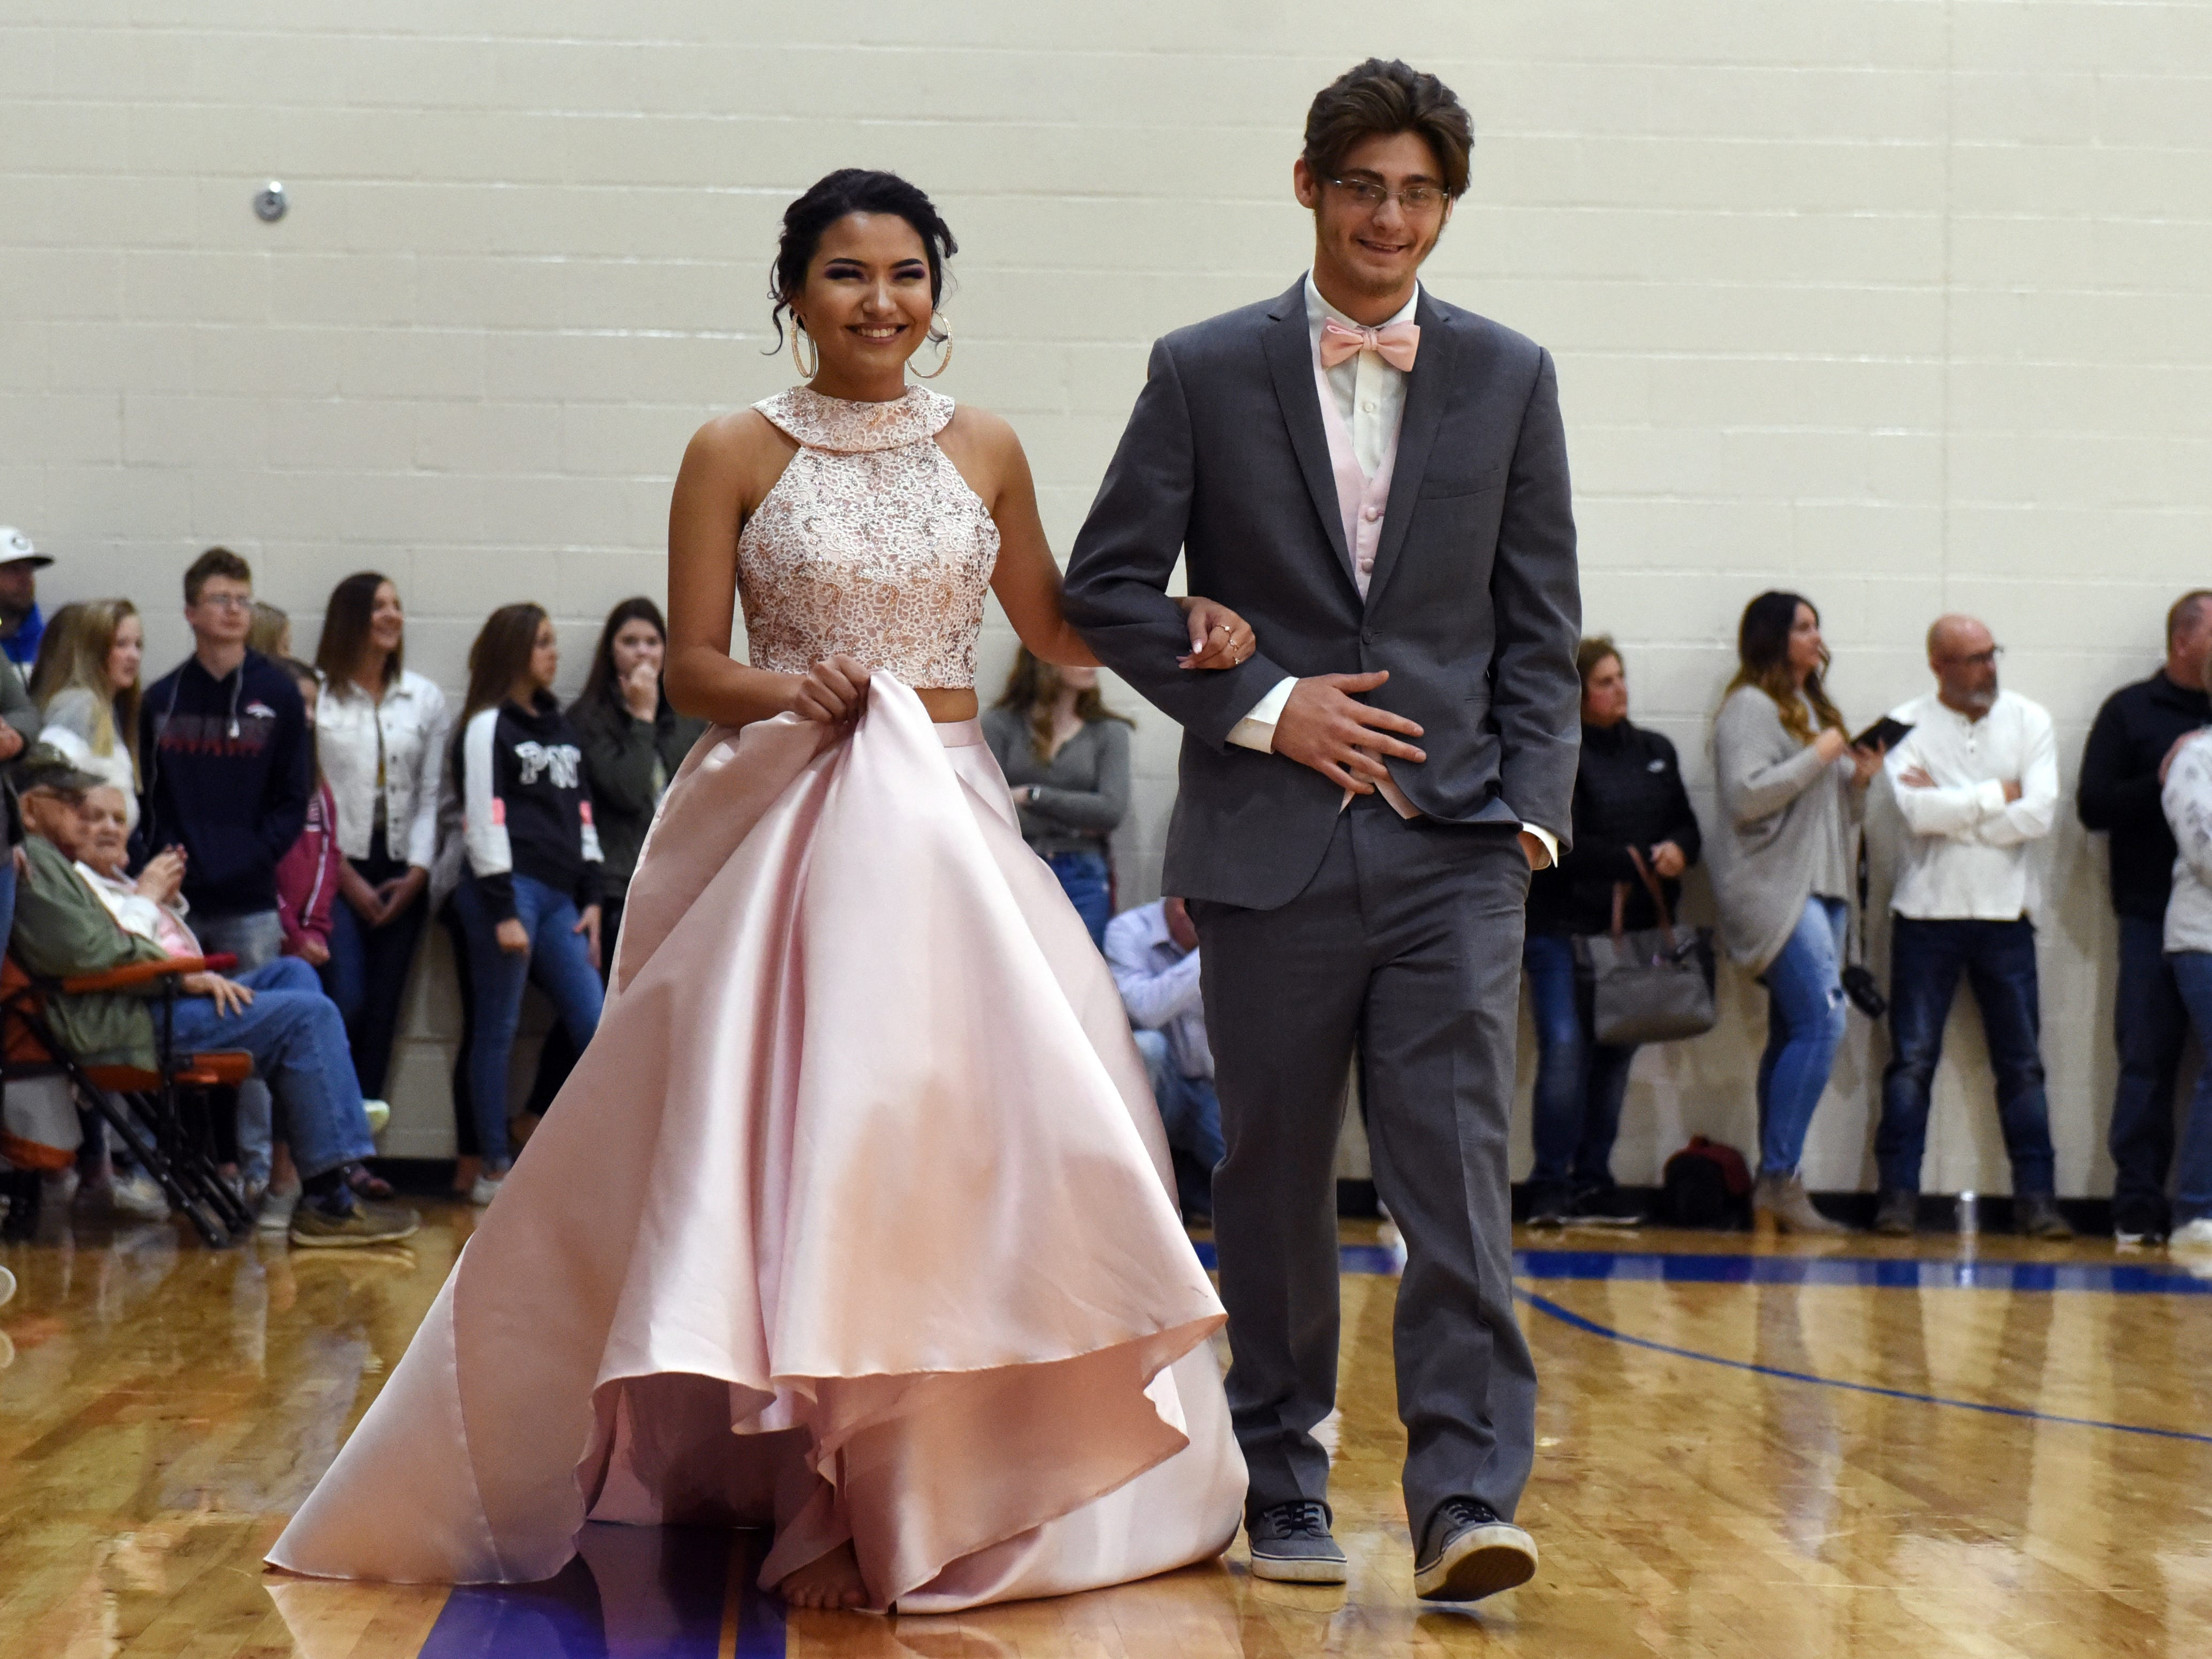 Maysville High School held its prom on Saturday night,  at the high school. The theme was In Living Color.